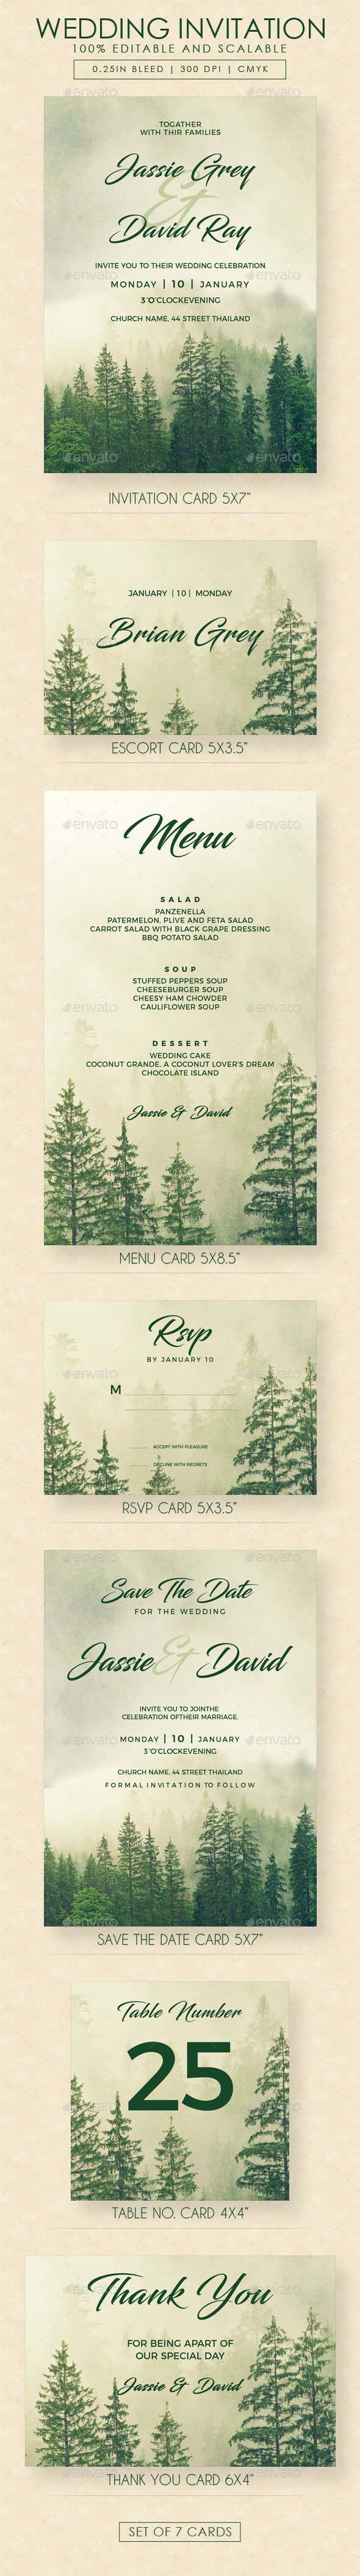 Tree Wedding Invitation Suite - Weddings Cards & Invites